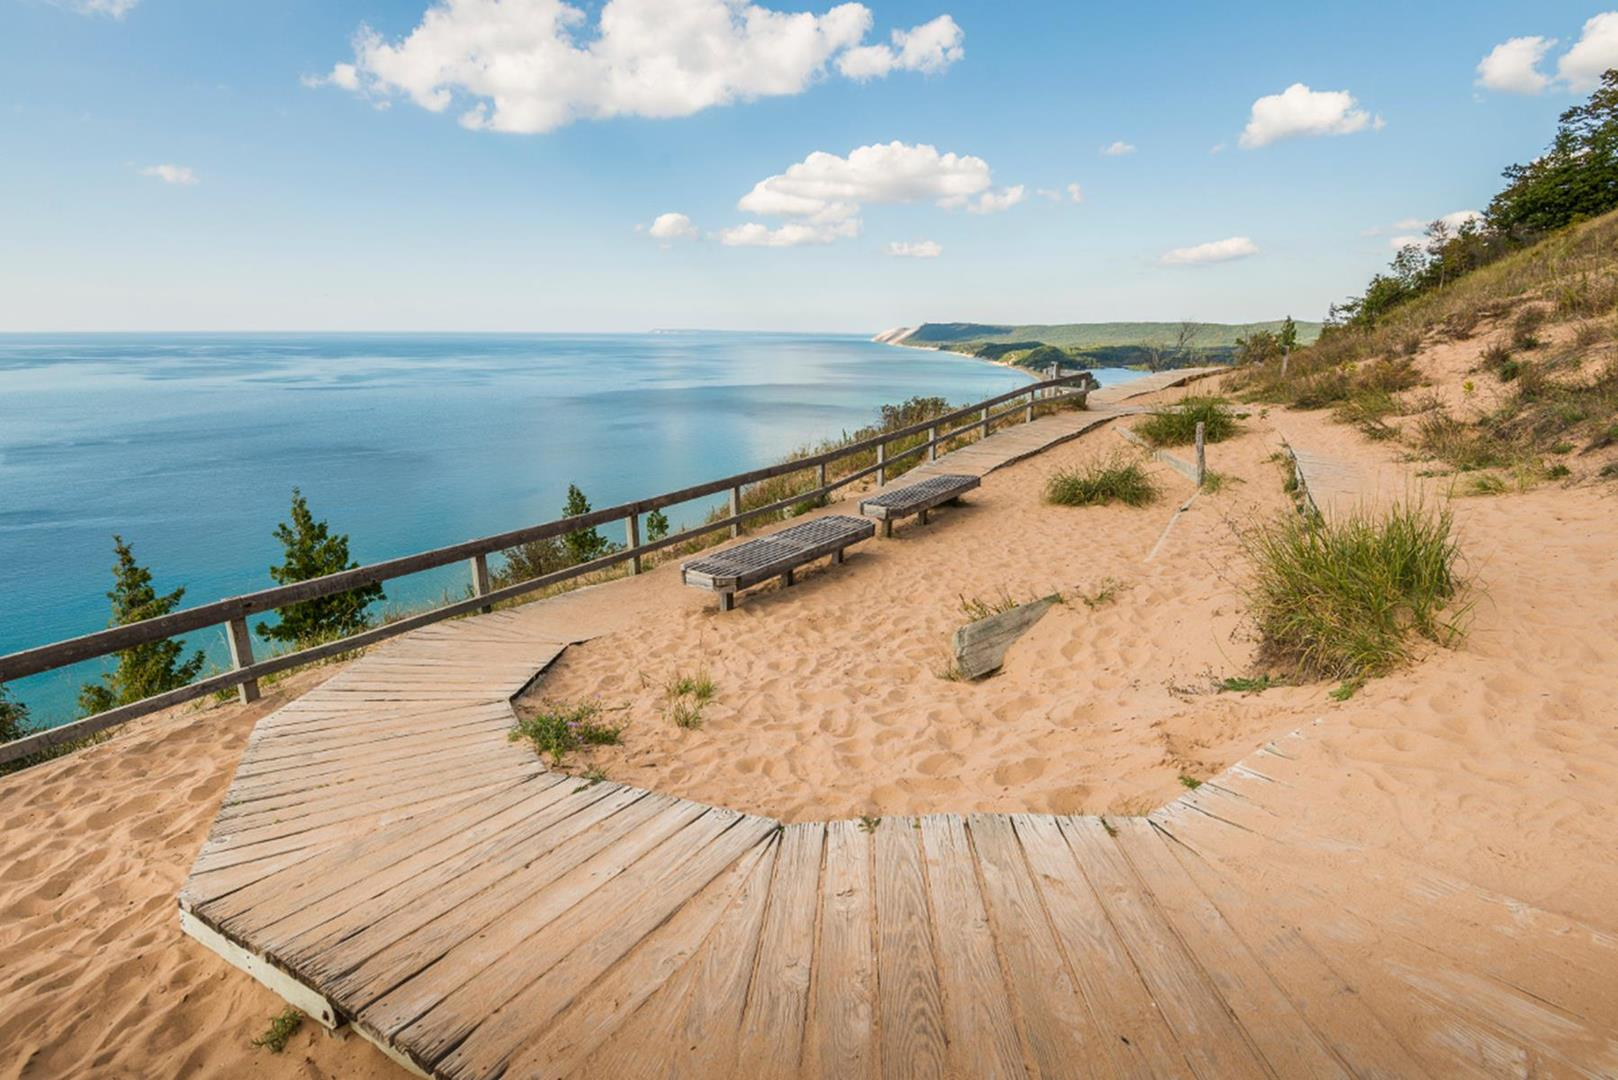 traverse city sites